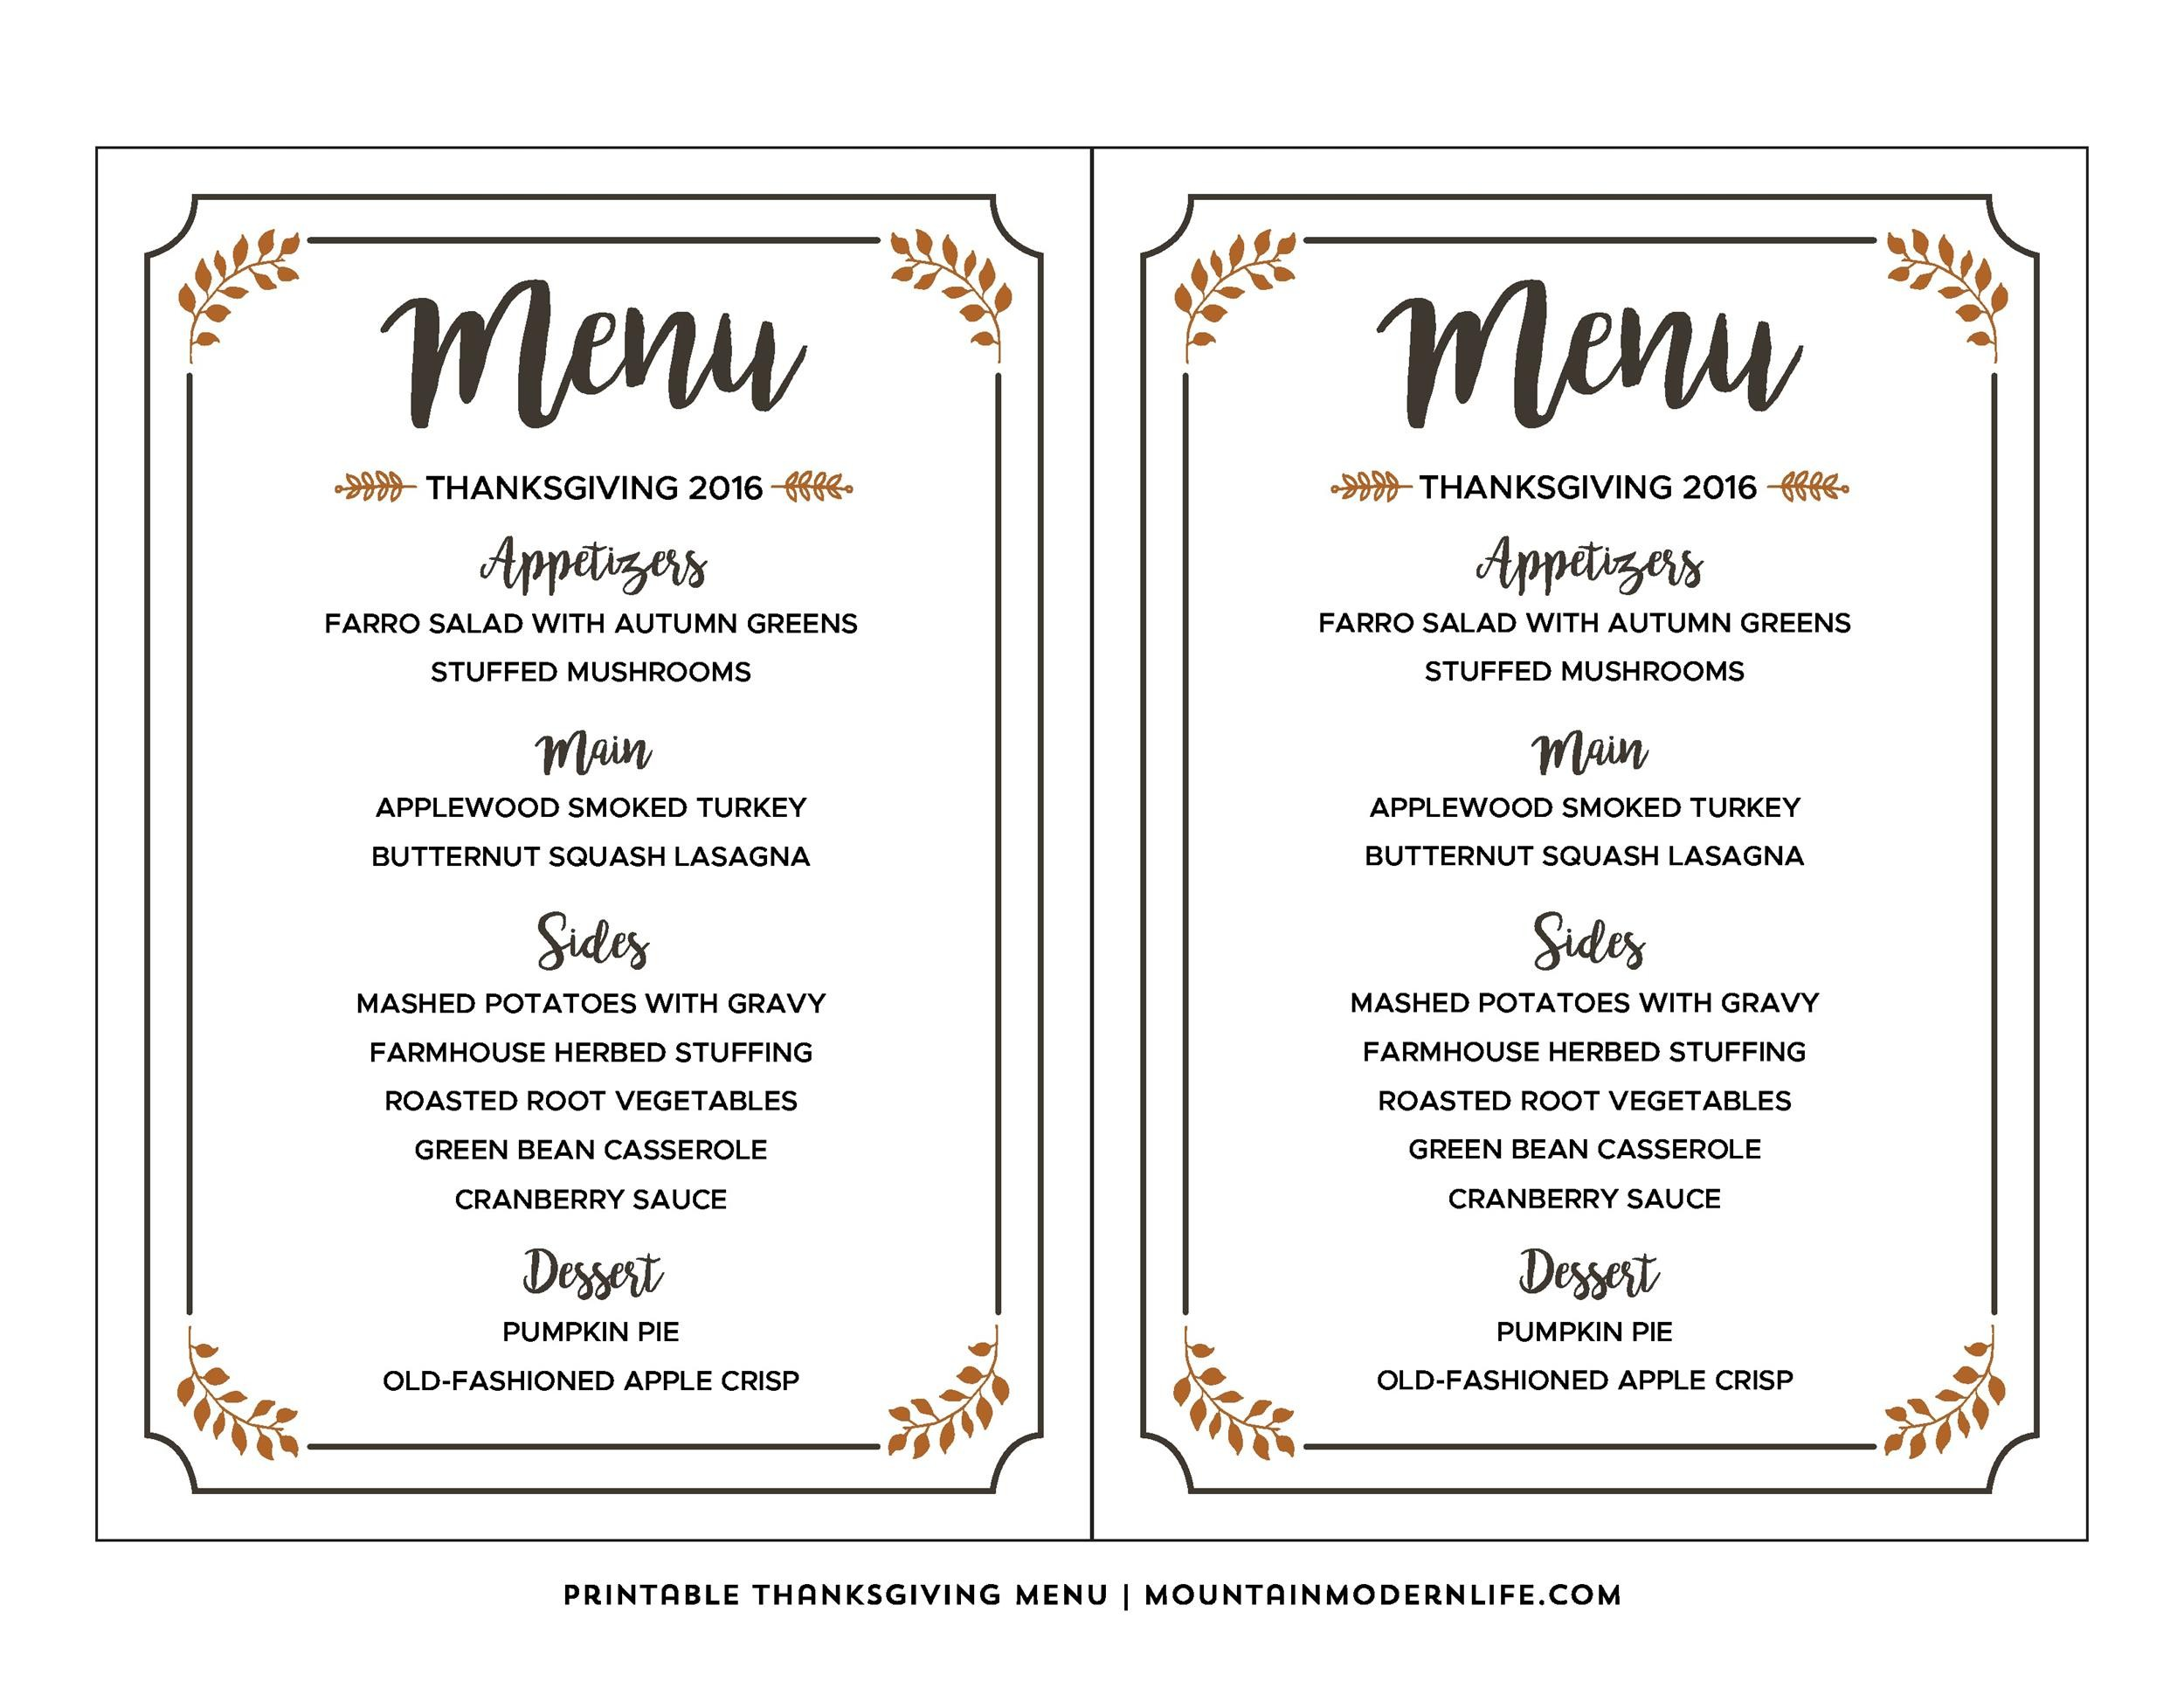 35 Awesome Thanksgiving Menu Templates ᐅ Template Lab